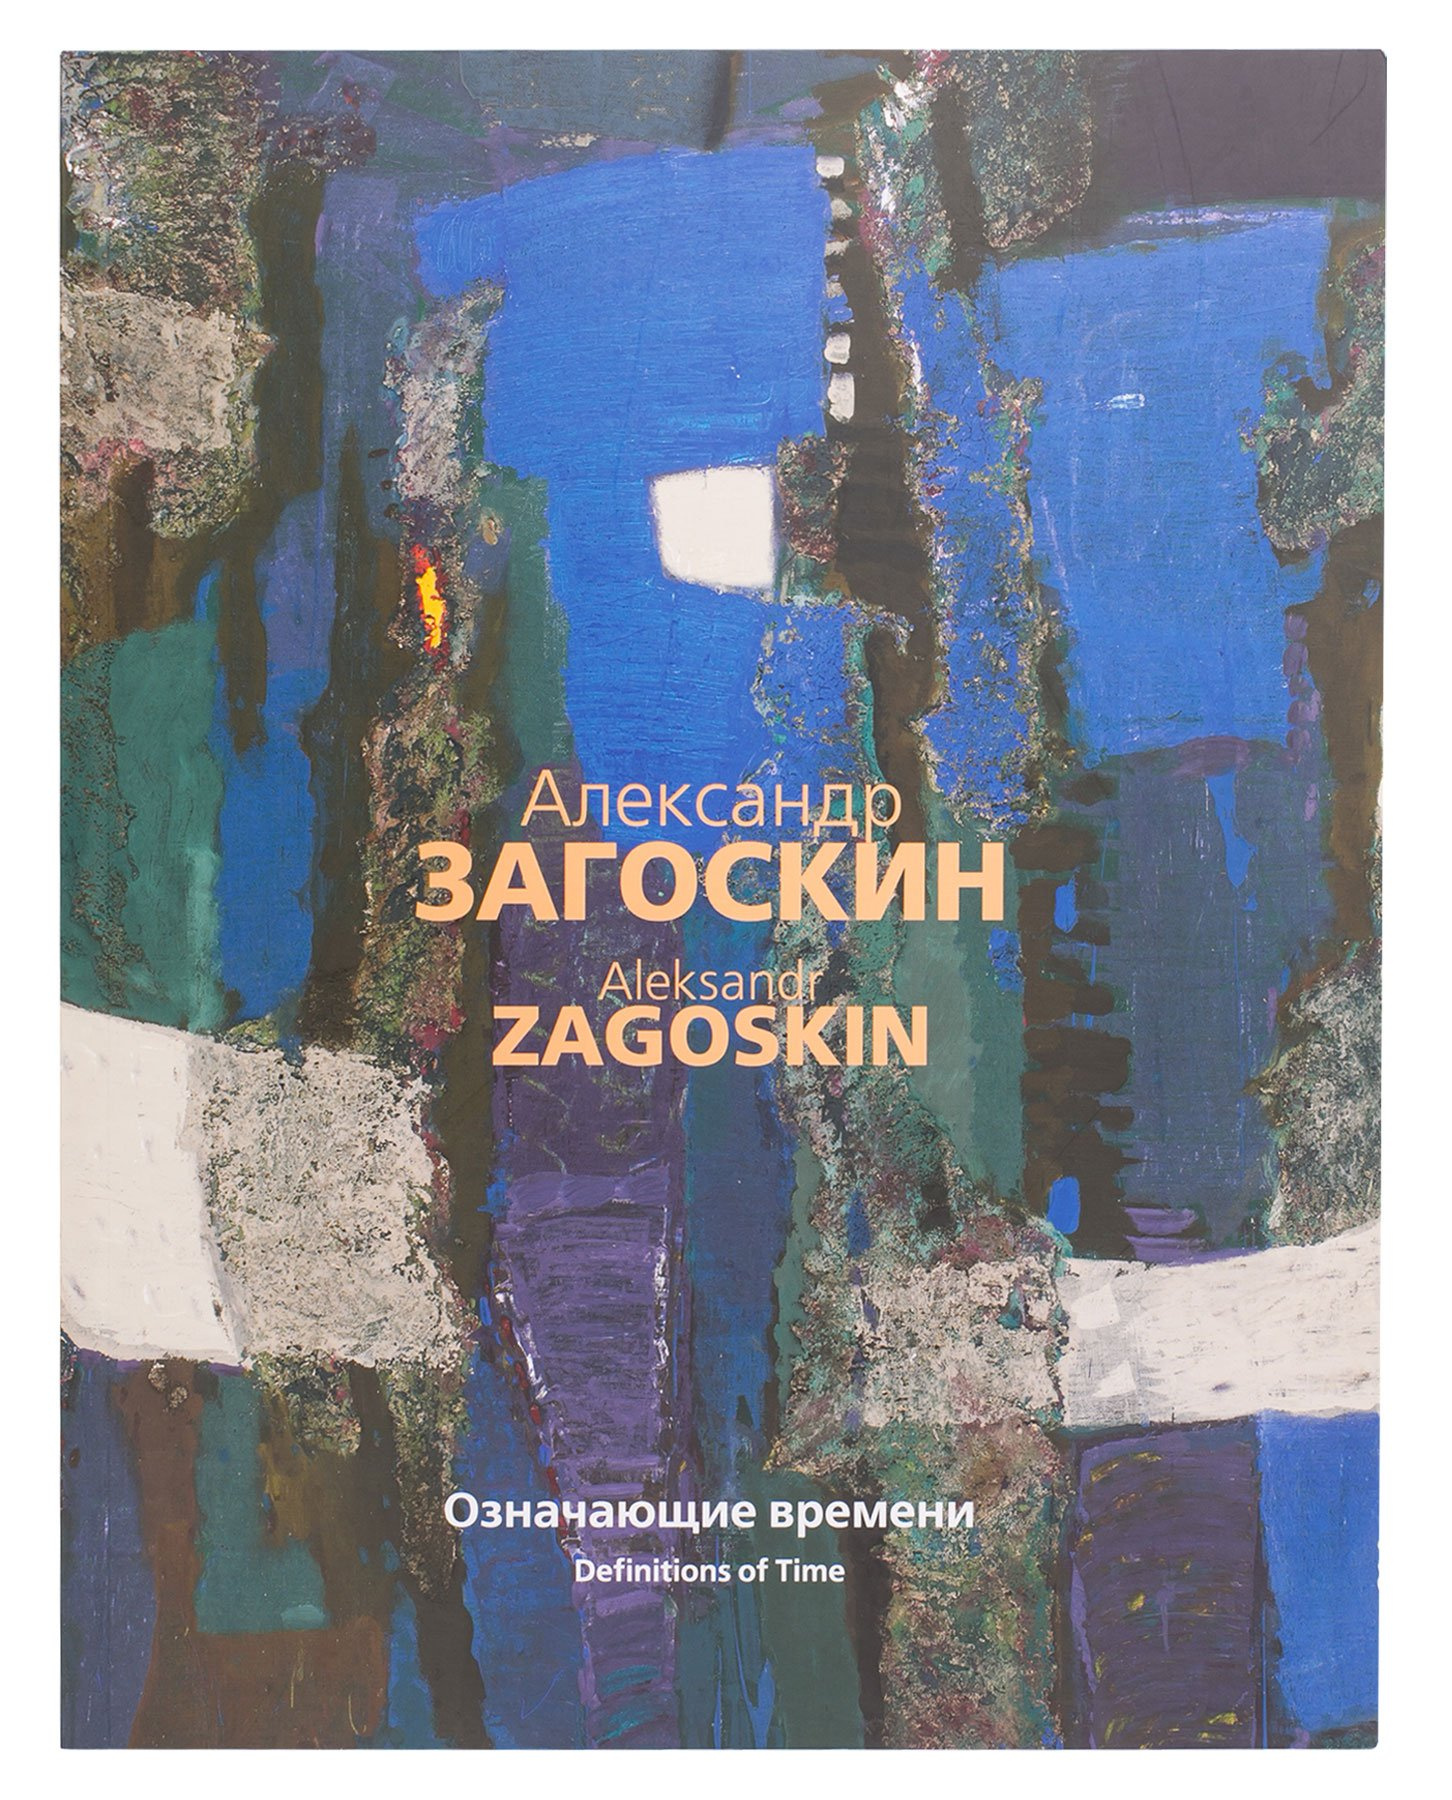 Catalog «Alexander Zagostkin. Meanings of Time»